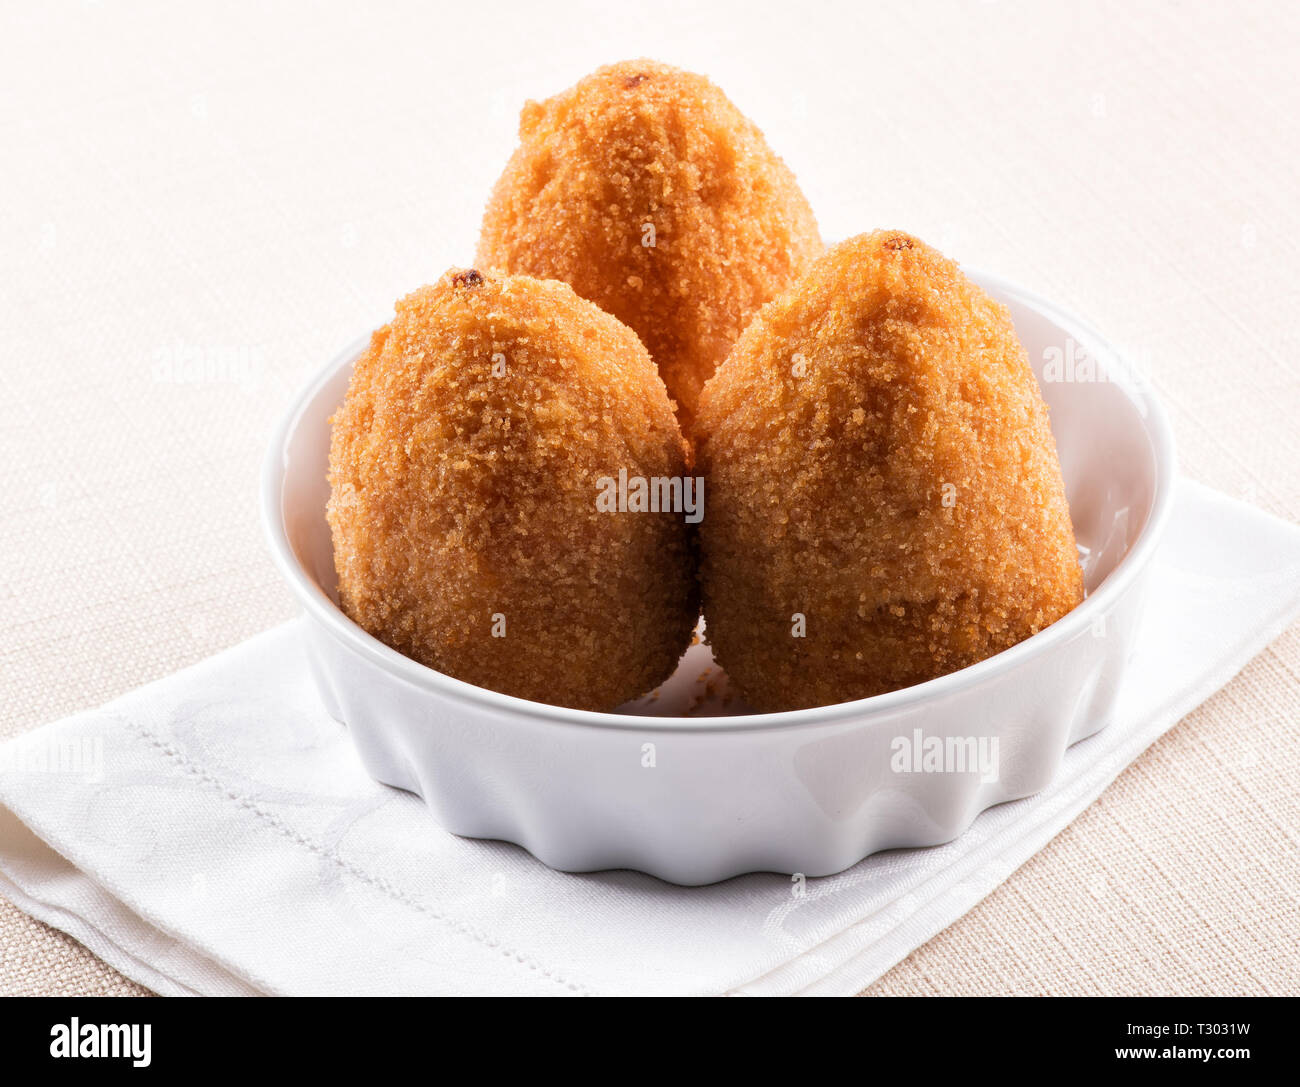 Three deep fried Arancini, breaded rice balls with a savory stuffing, from Sicily served in a bowl with white napkin - Stock Image